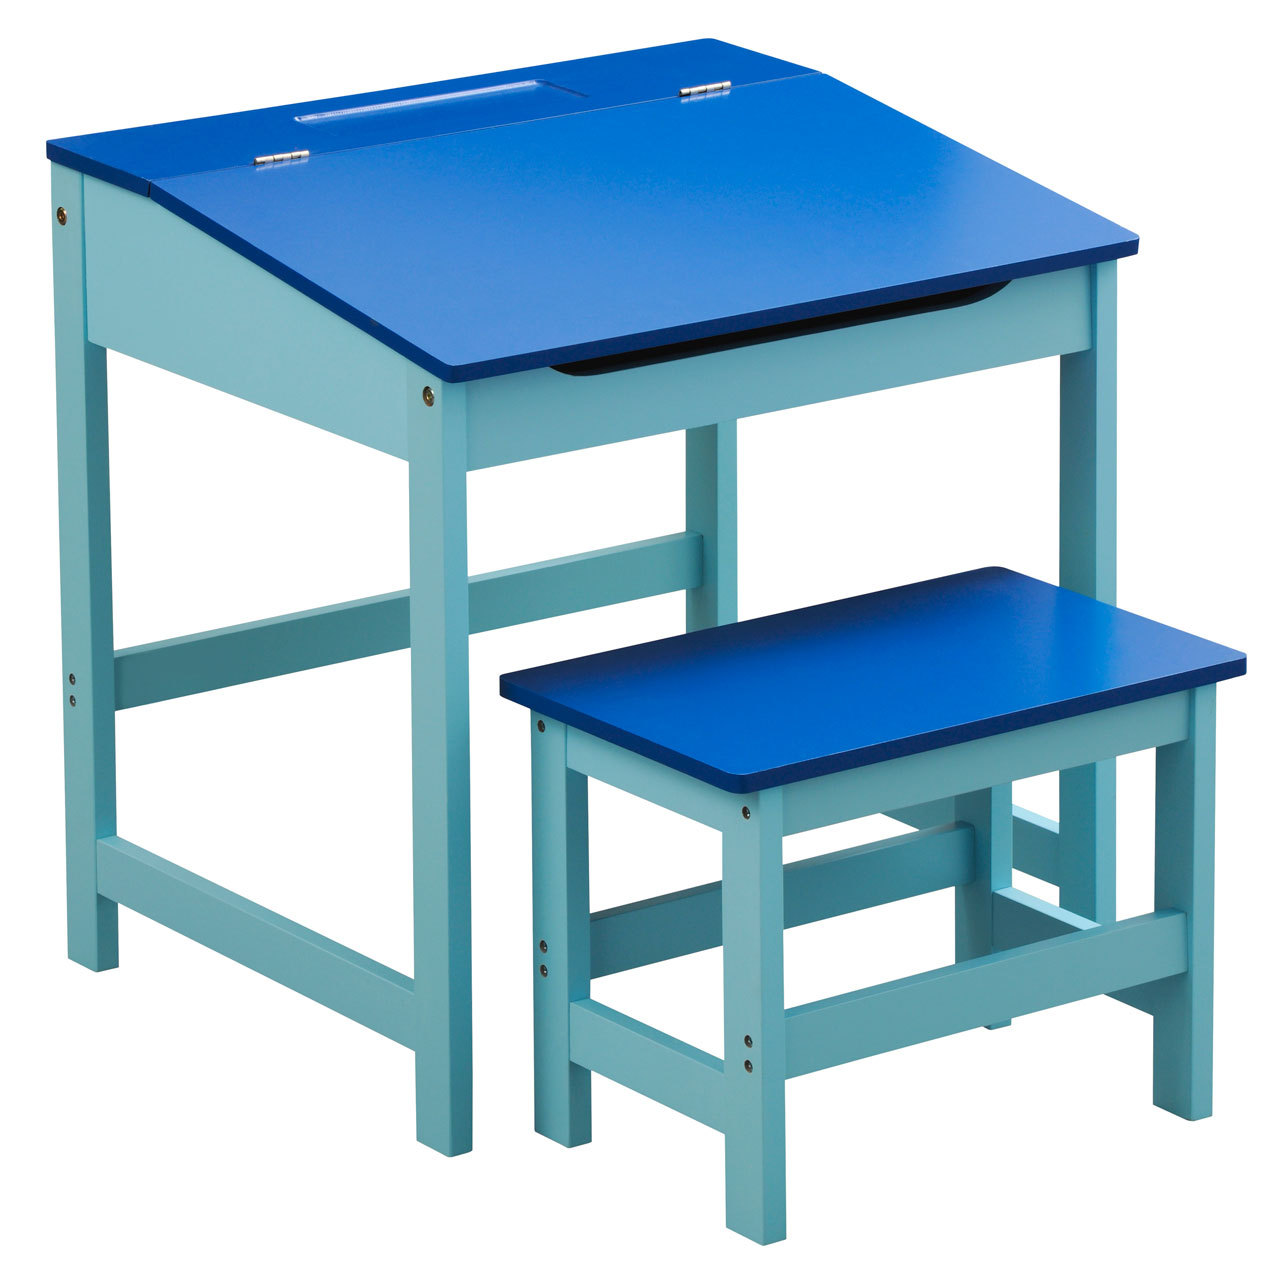 Incroyable Details About Blue Kids Children Study Activity Desk Table And Stool Chair  Seat Furniture Set